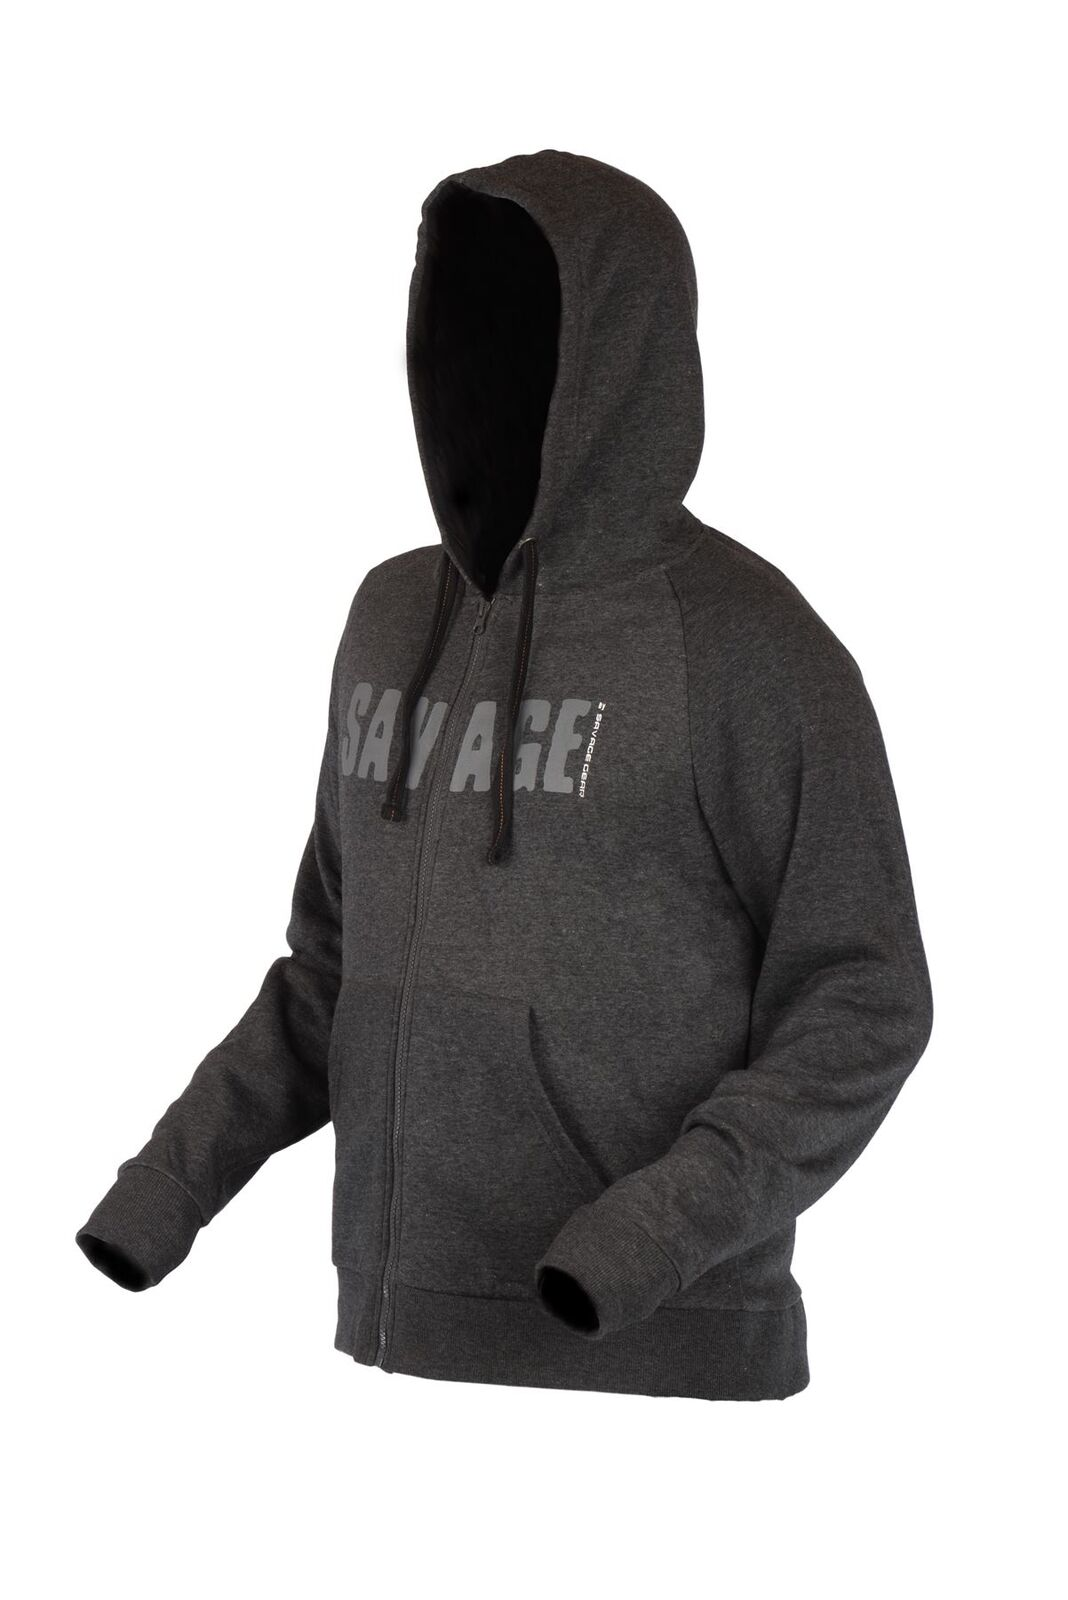 Savage Gear Simply Savage Zip Hoodie (GREAT PRODUCT )